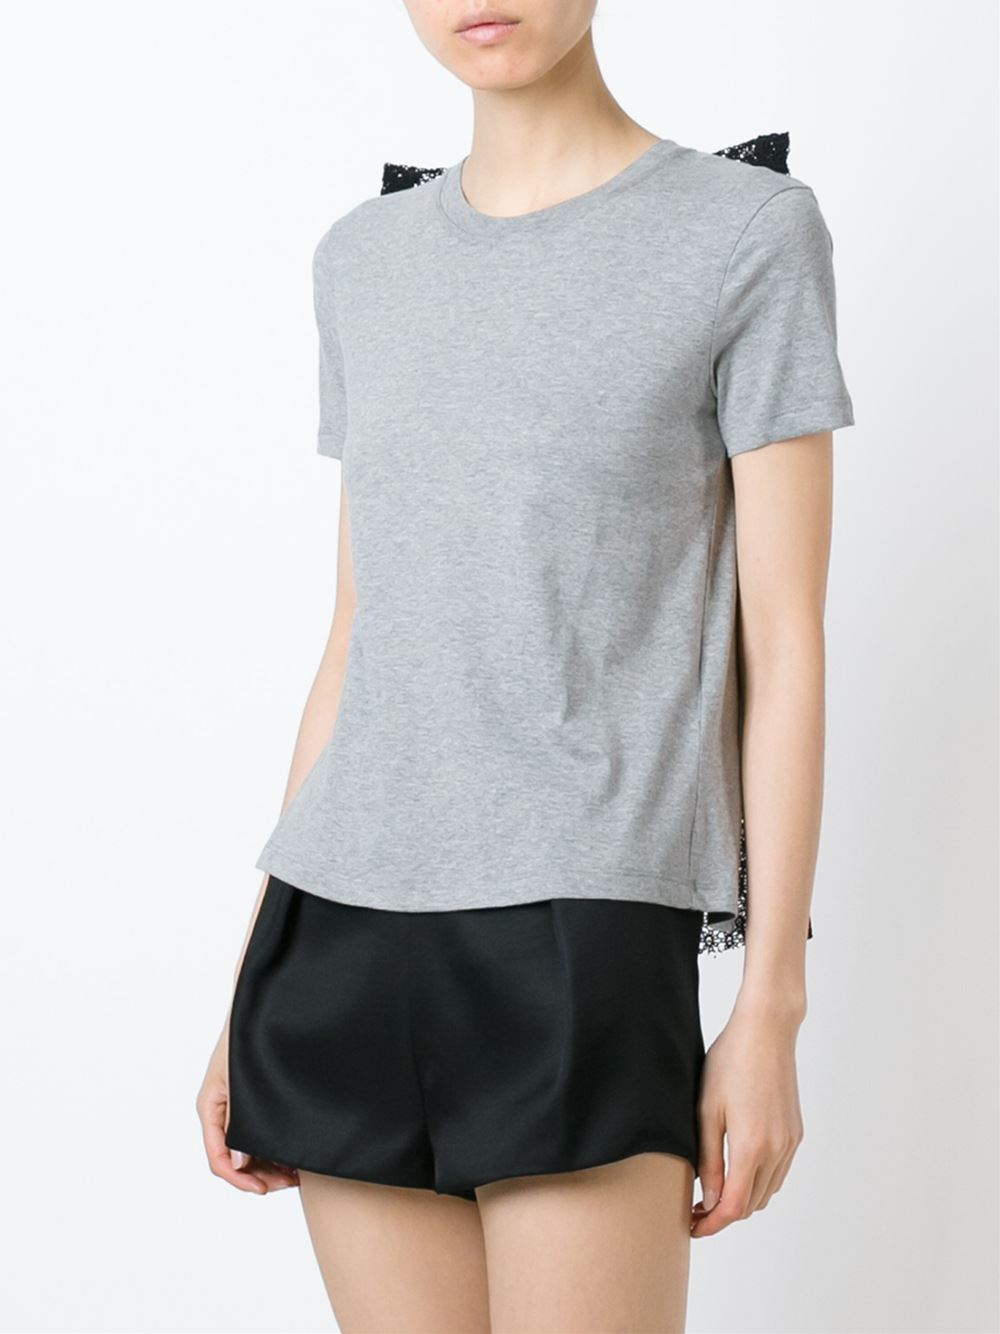 Red valentino lace bow detail t shirt in gray lyst for Red valentino t shirt